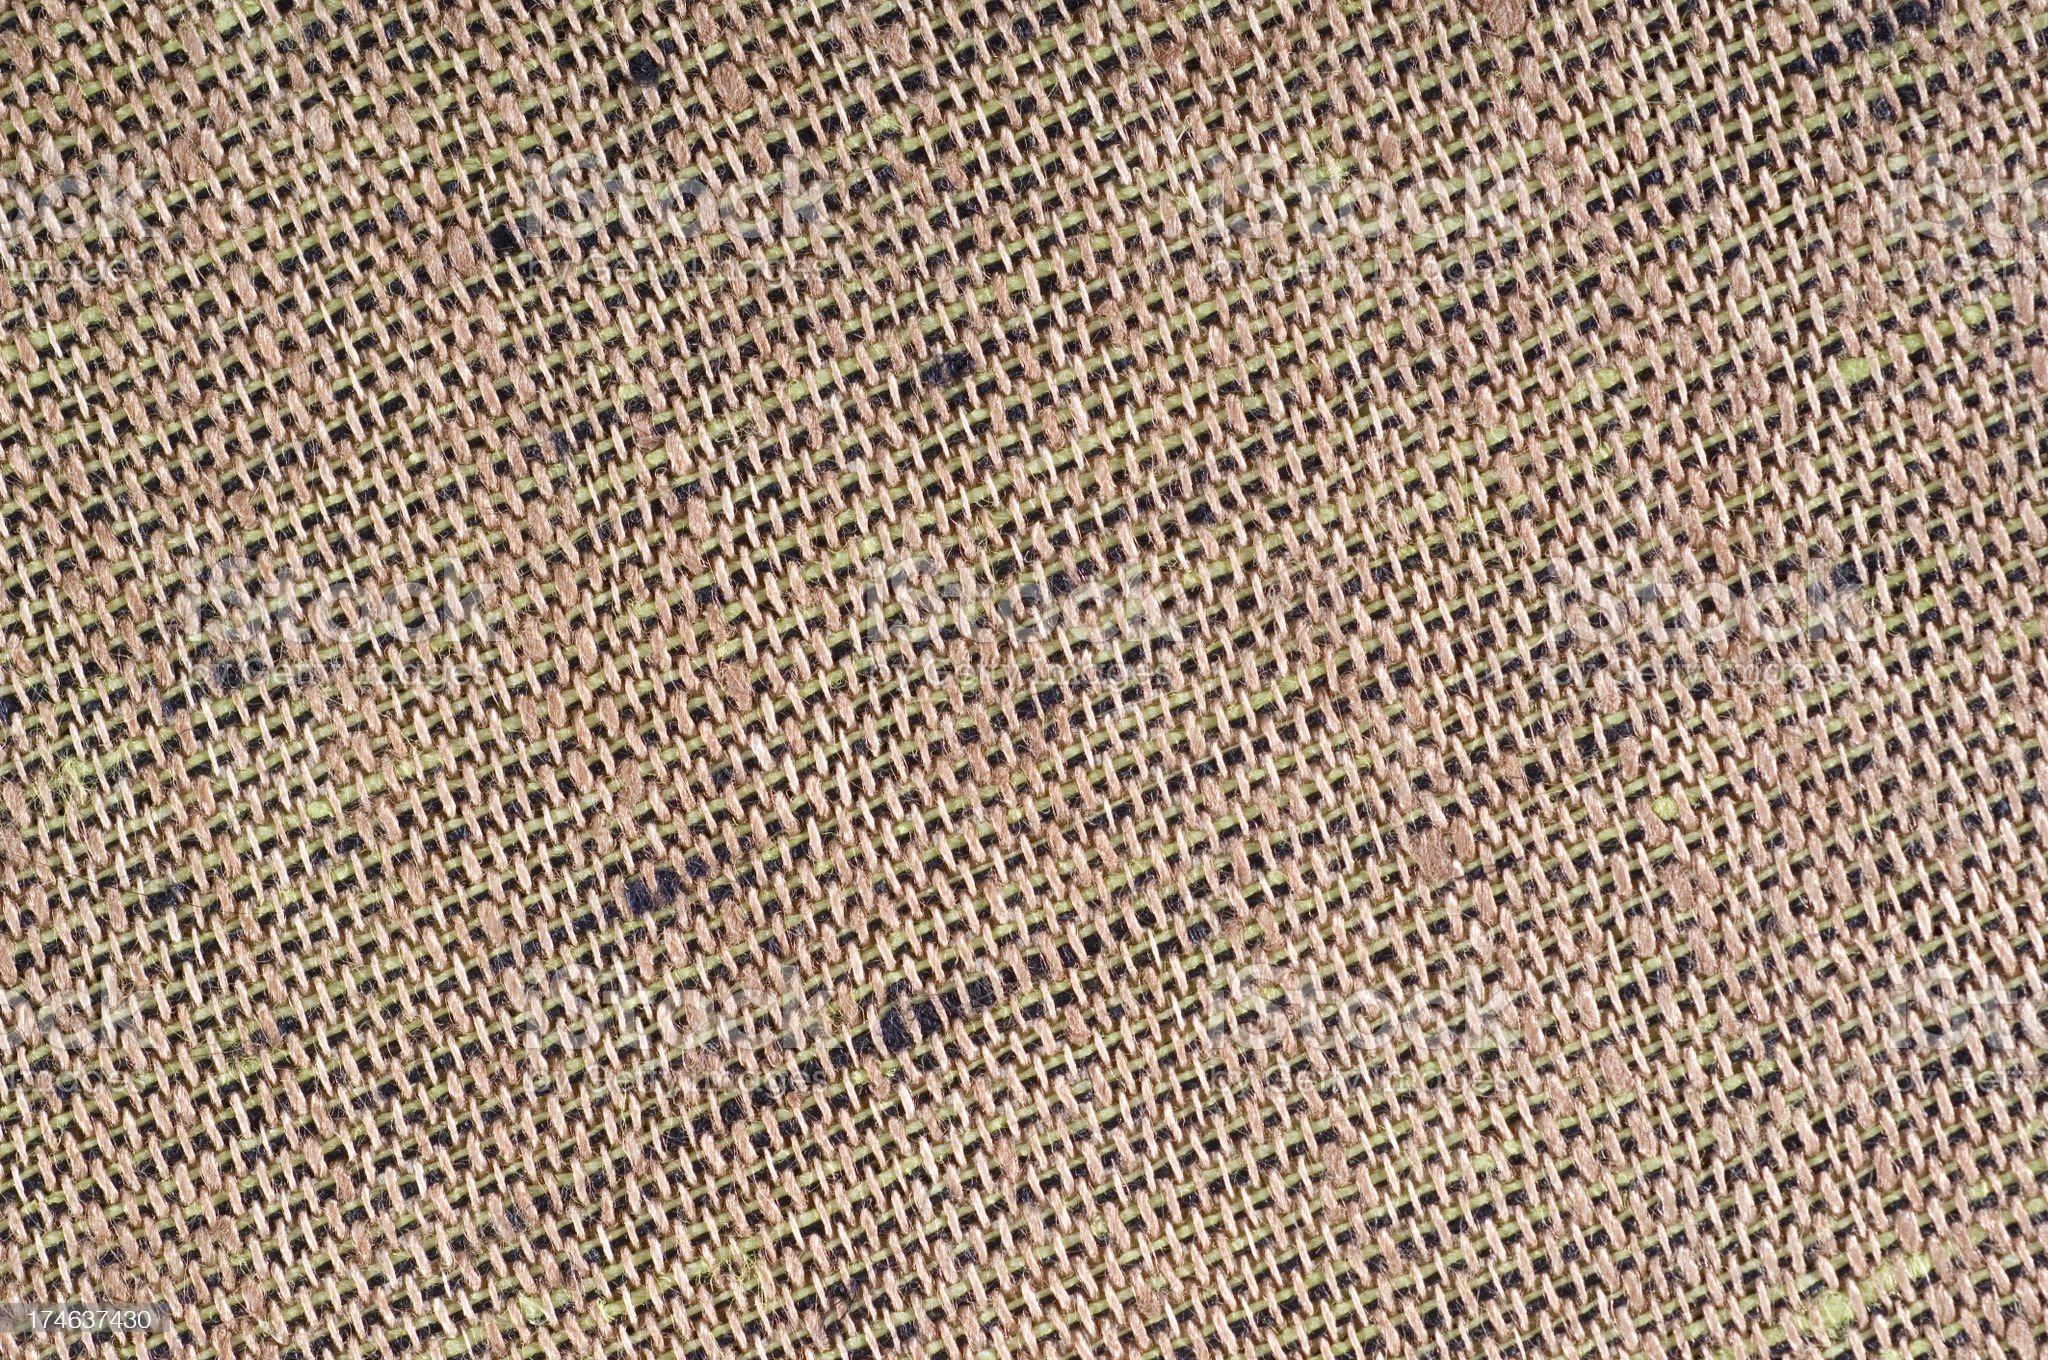 Texture-natural fabric royalty-free stock photo